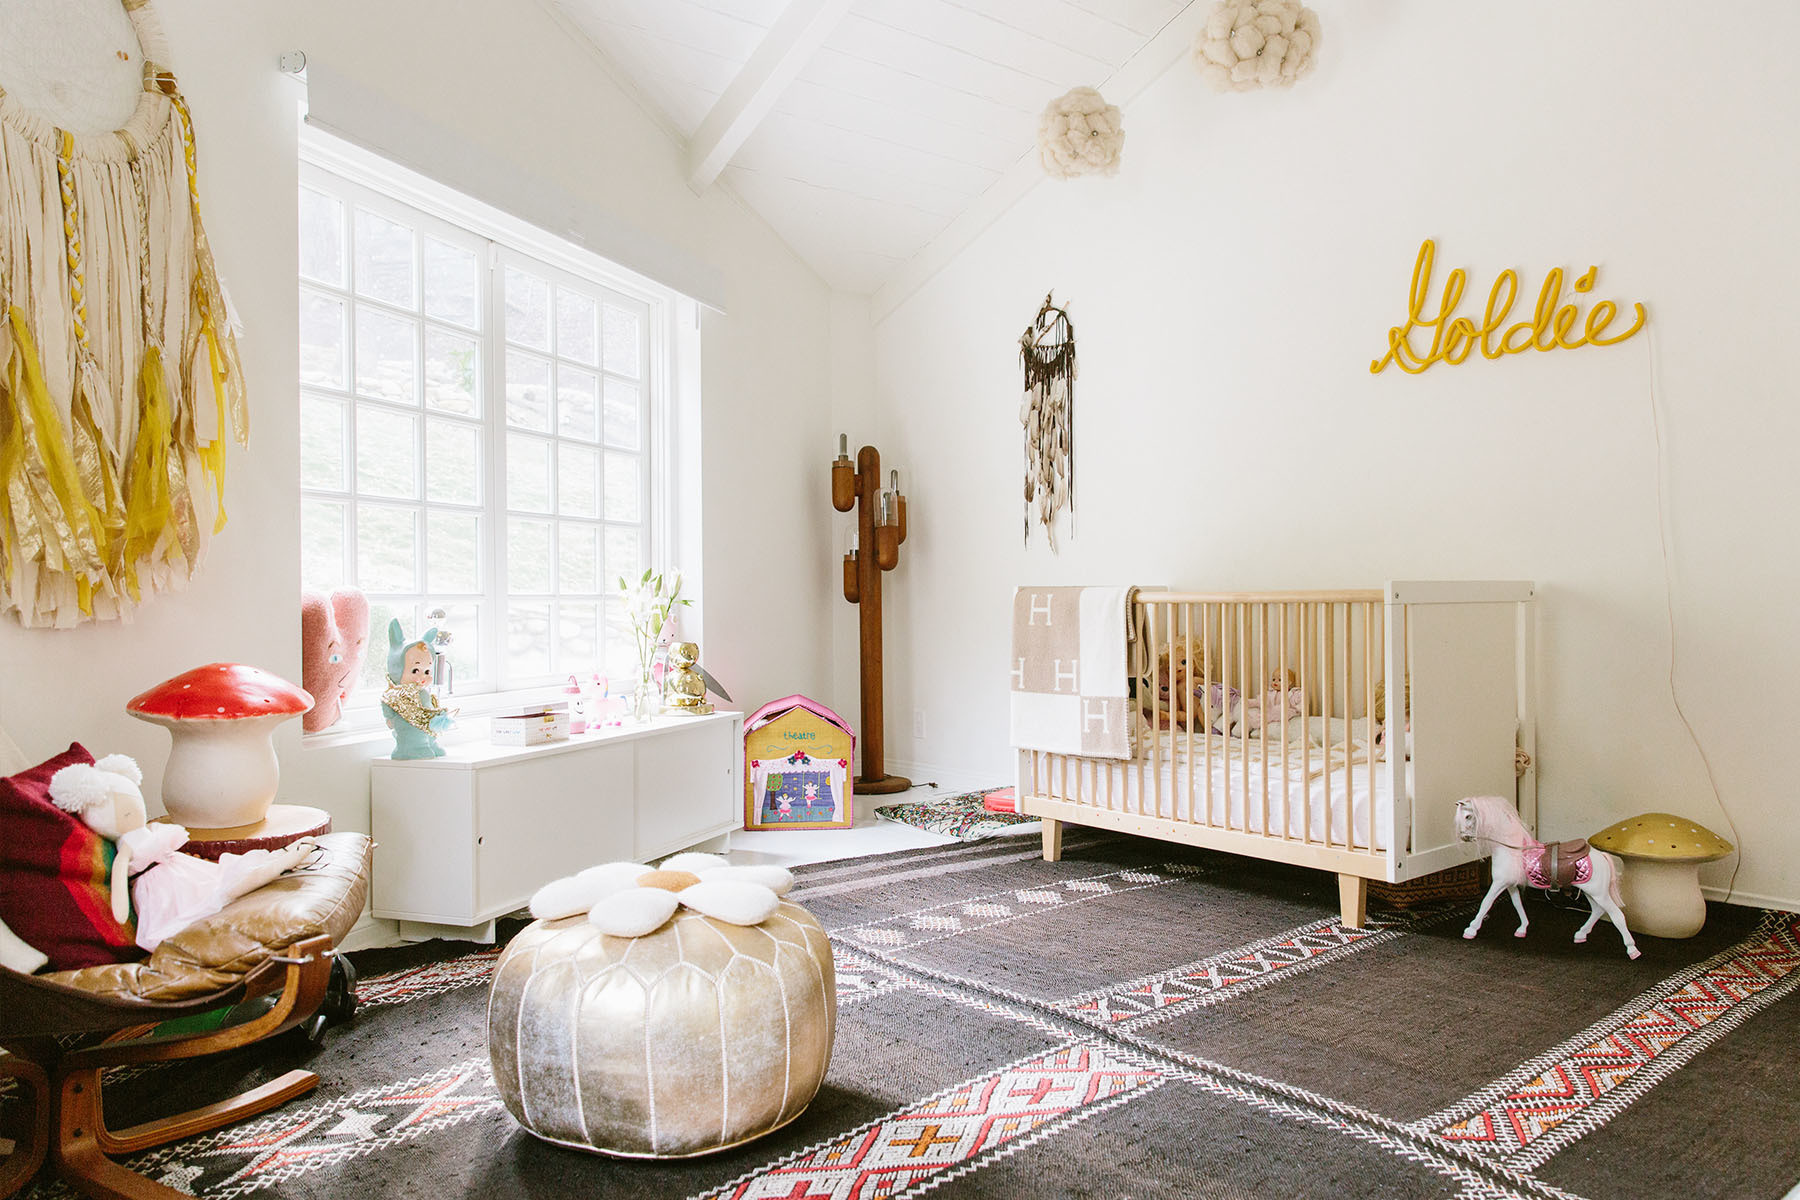 The duo stuck to a yellow and gold color scheme when designing the ideal space for their daughter, Goldie. Oeuf Crib | Light Installation, Dream Catcher, couples' own design | Vintage Toys, Pouf.